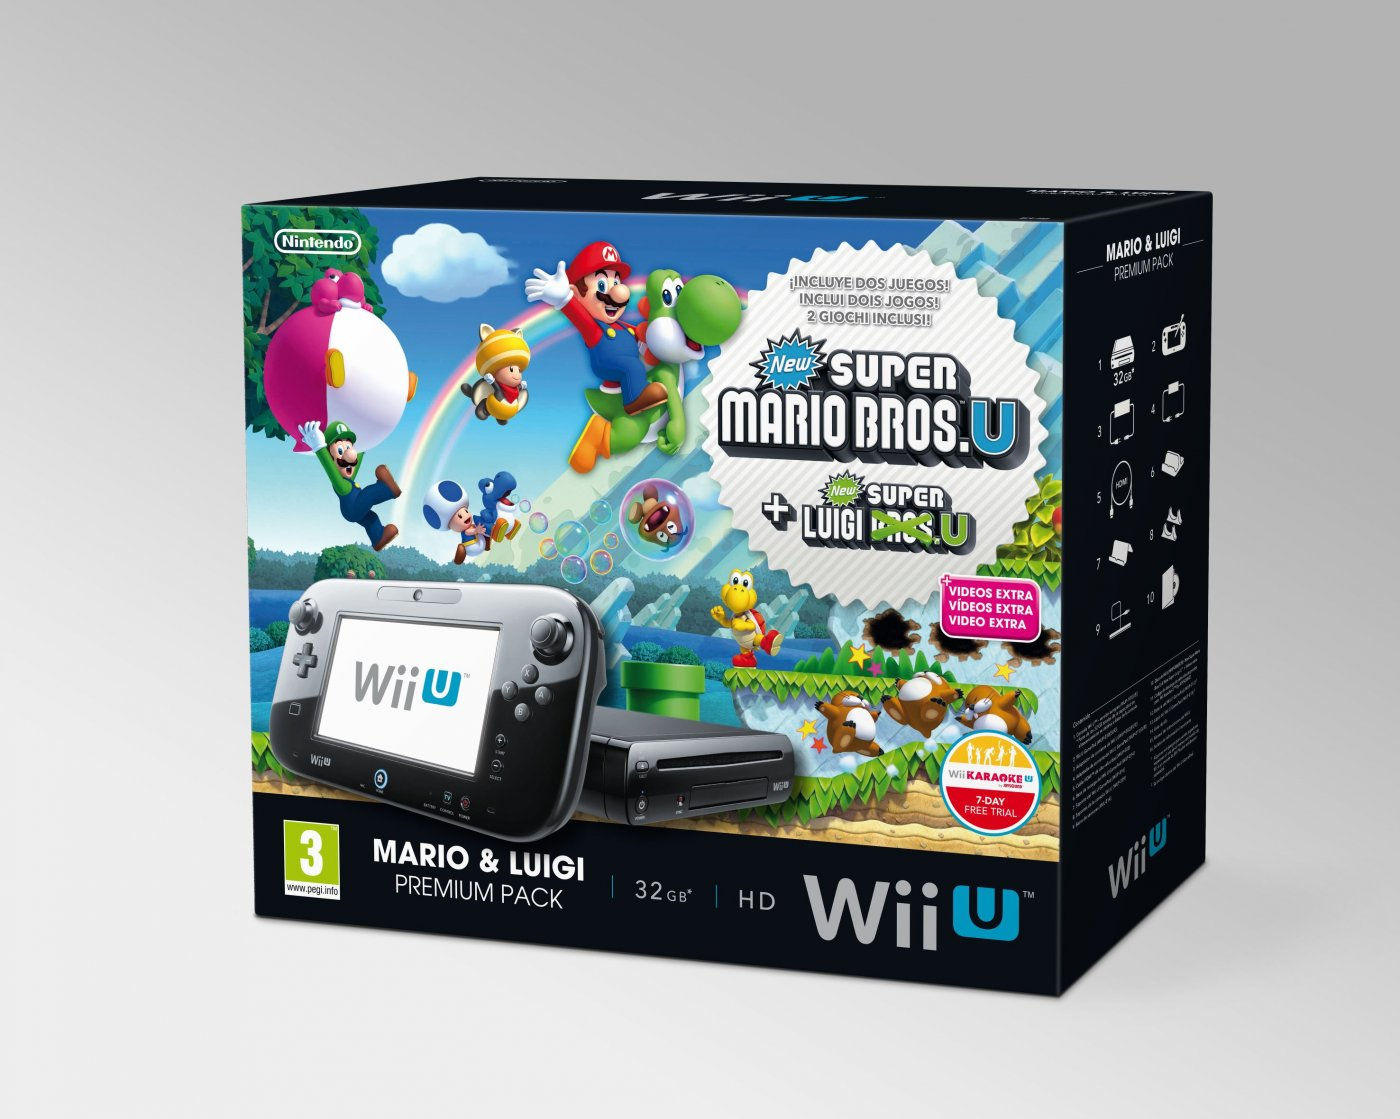 wii u super mario bros u bundle